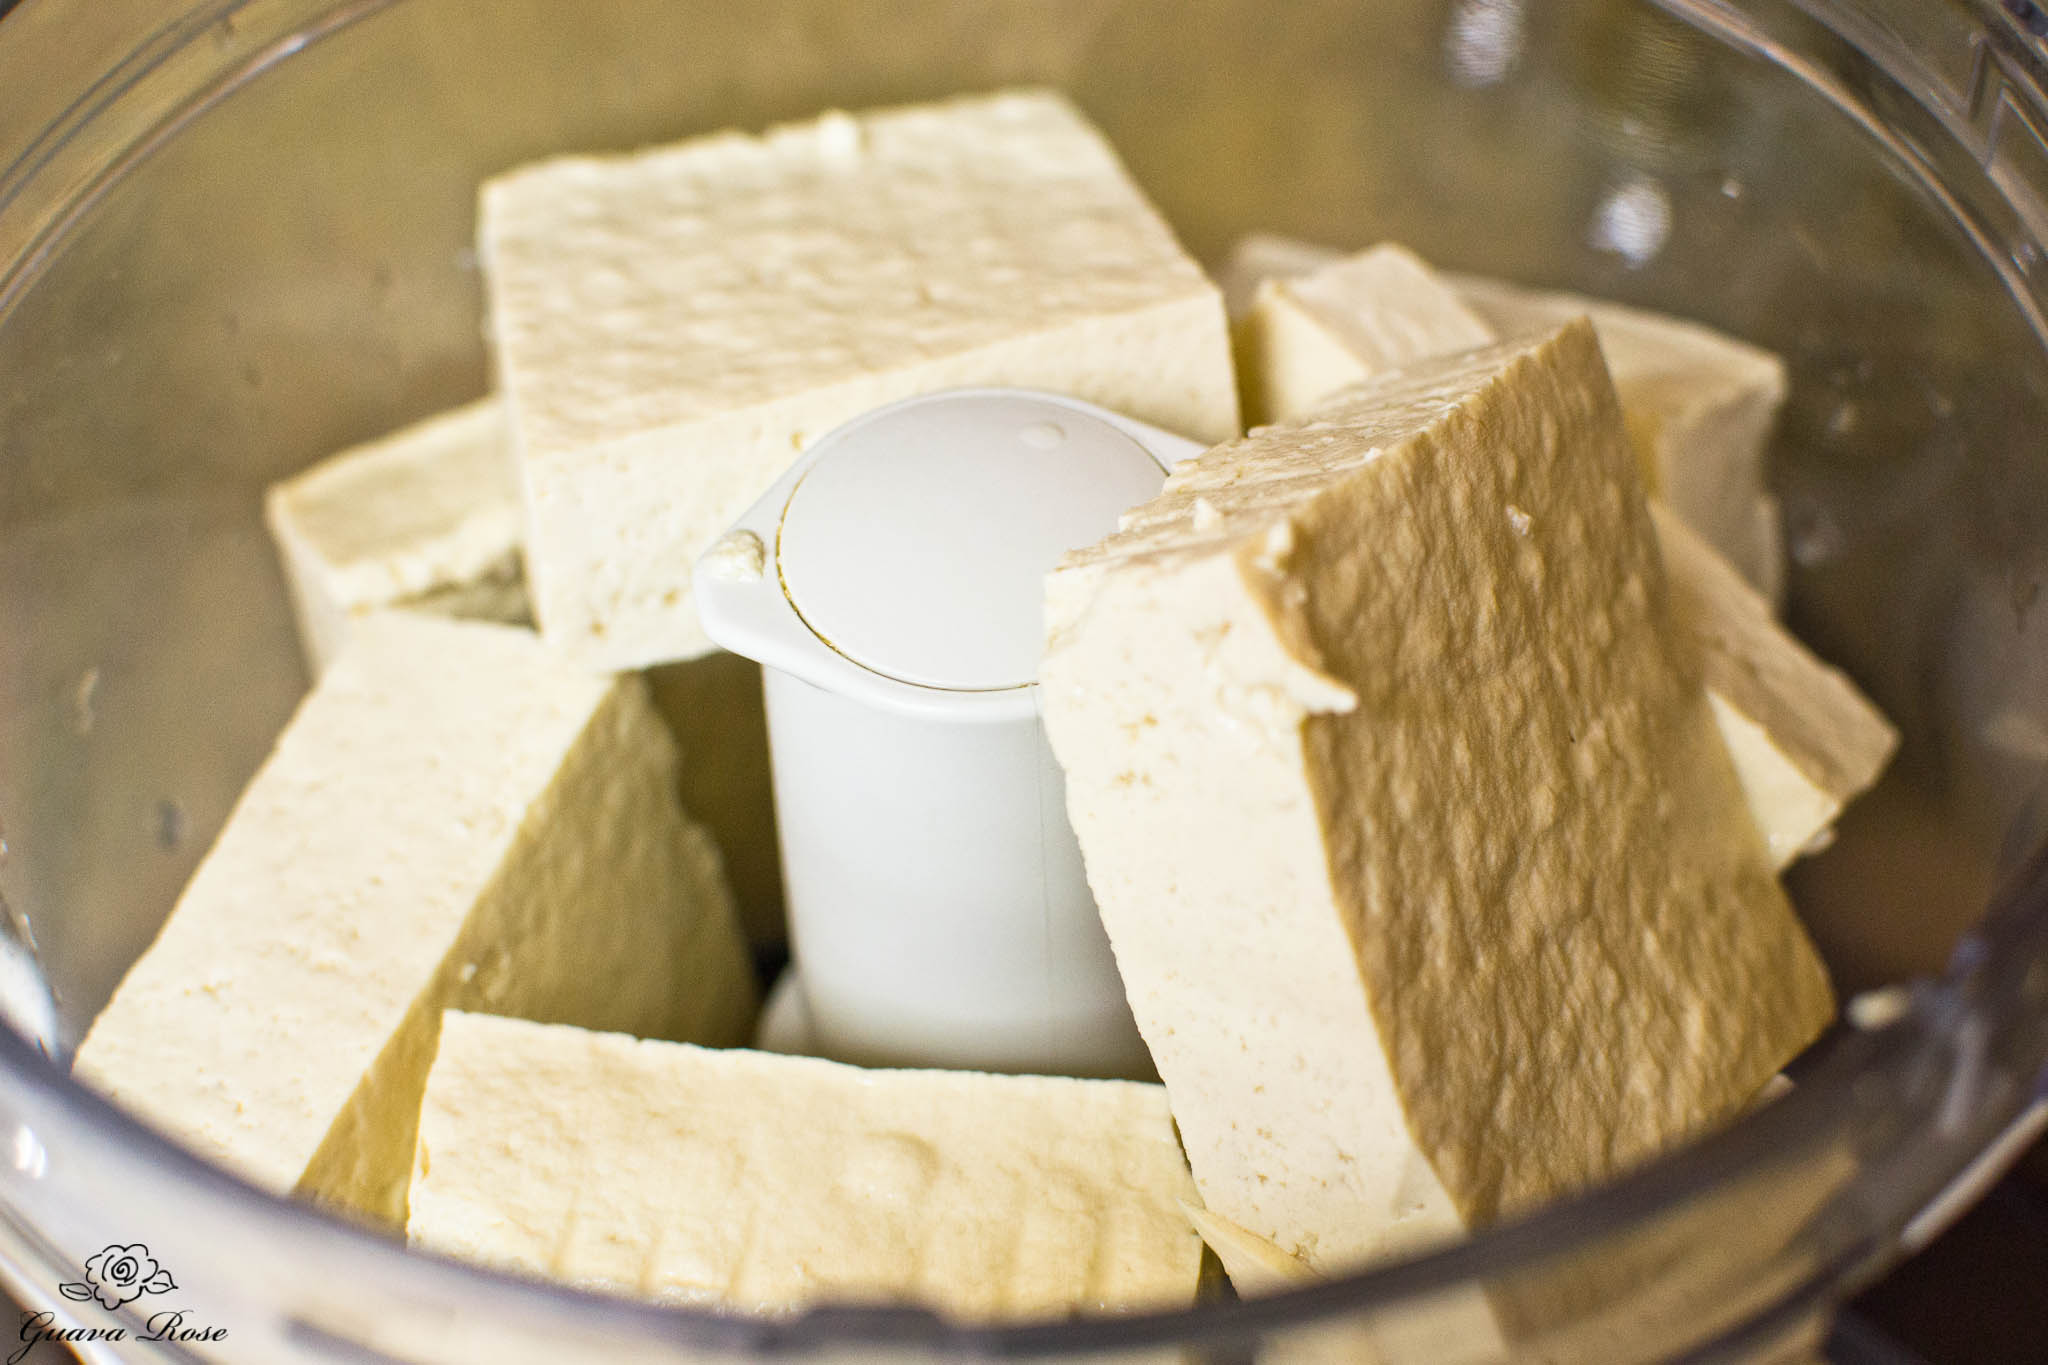 Tofu in food processor